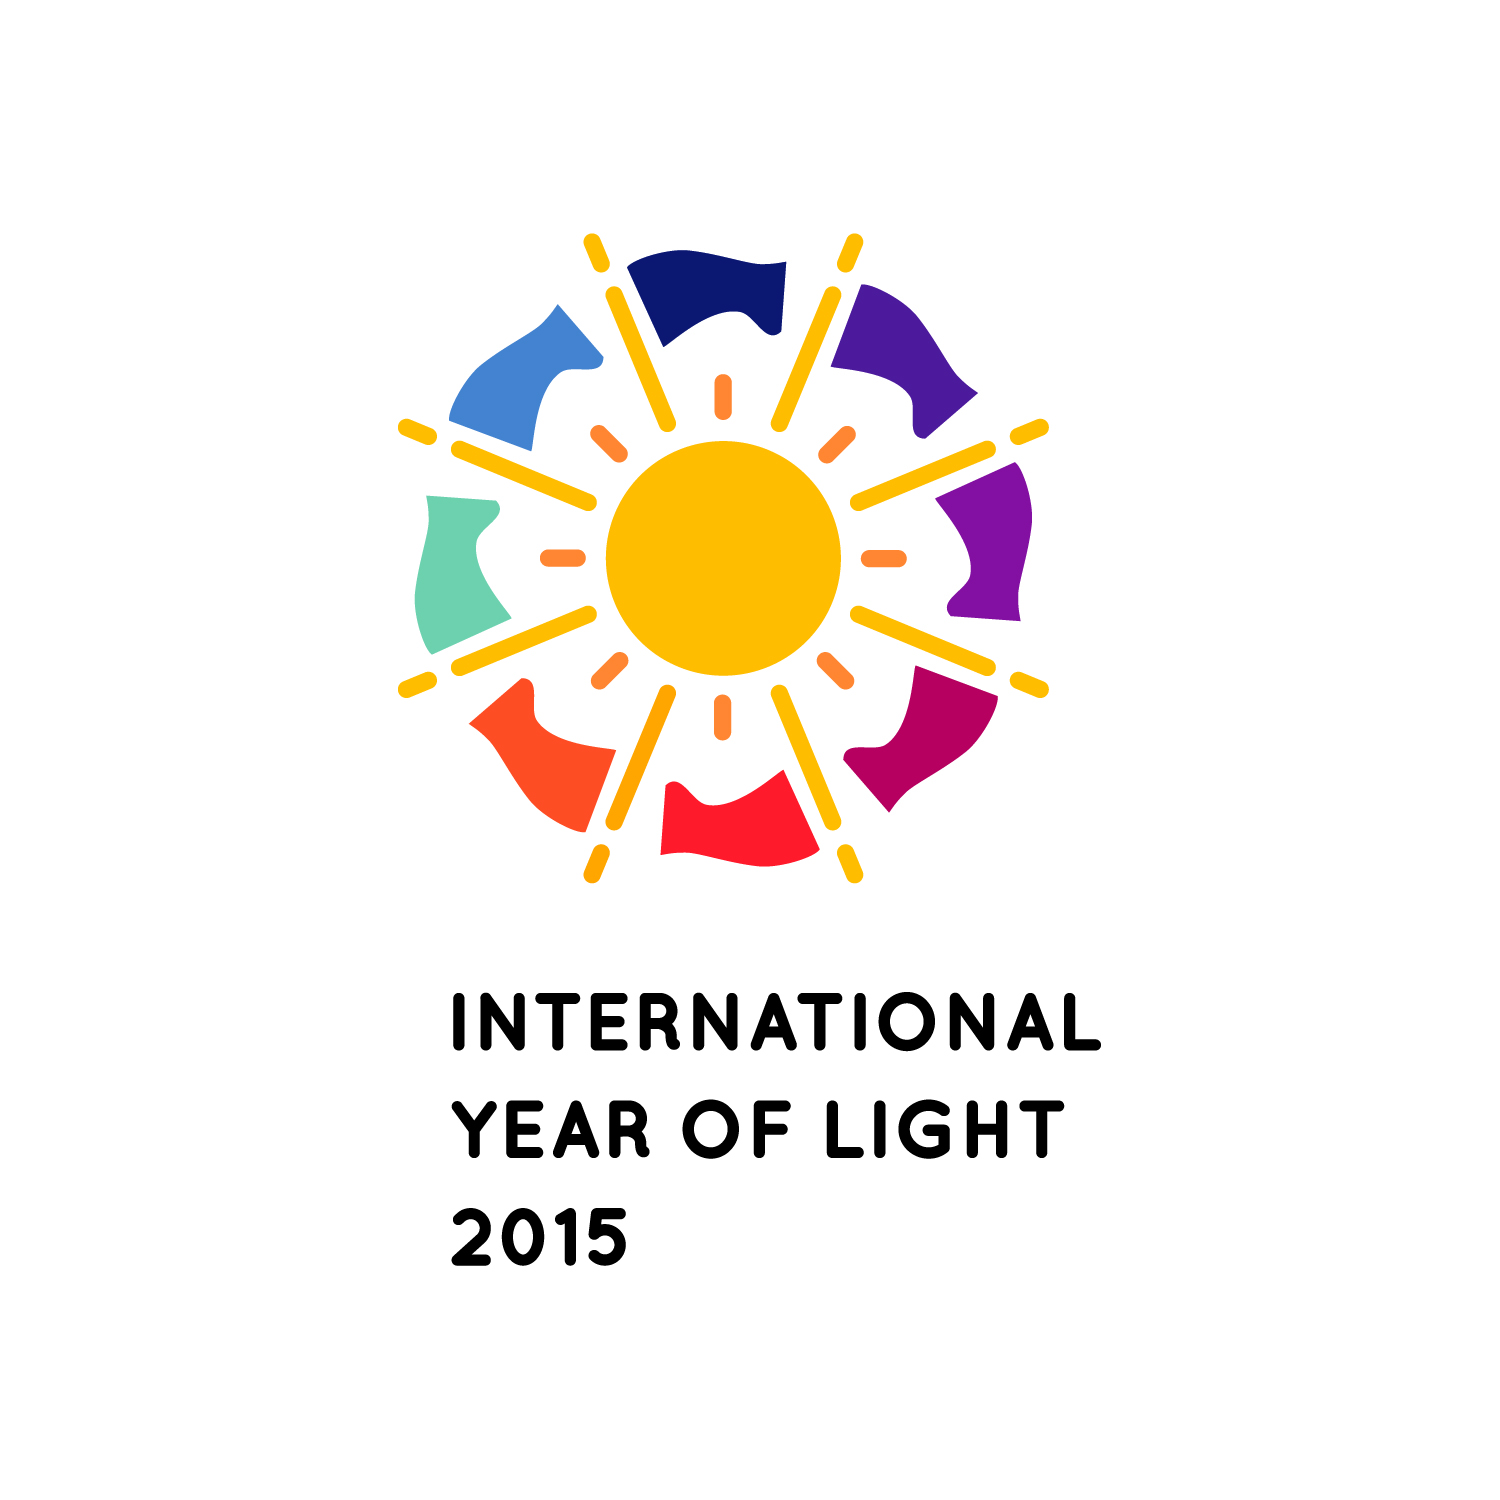 2015 is the International Year of Light.